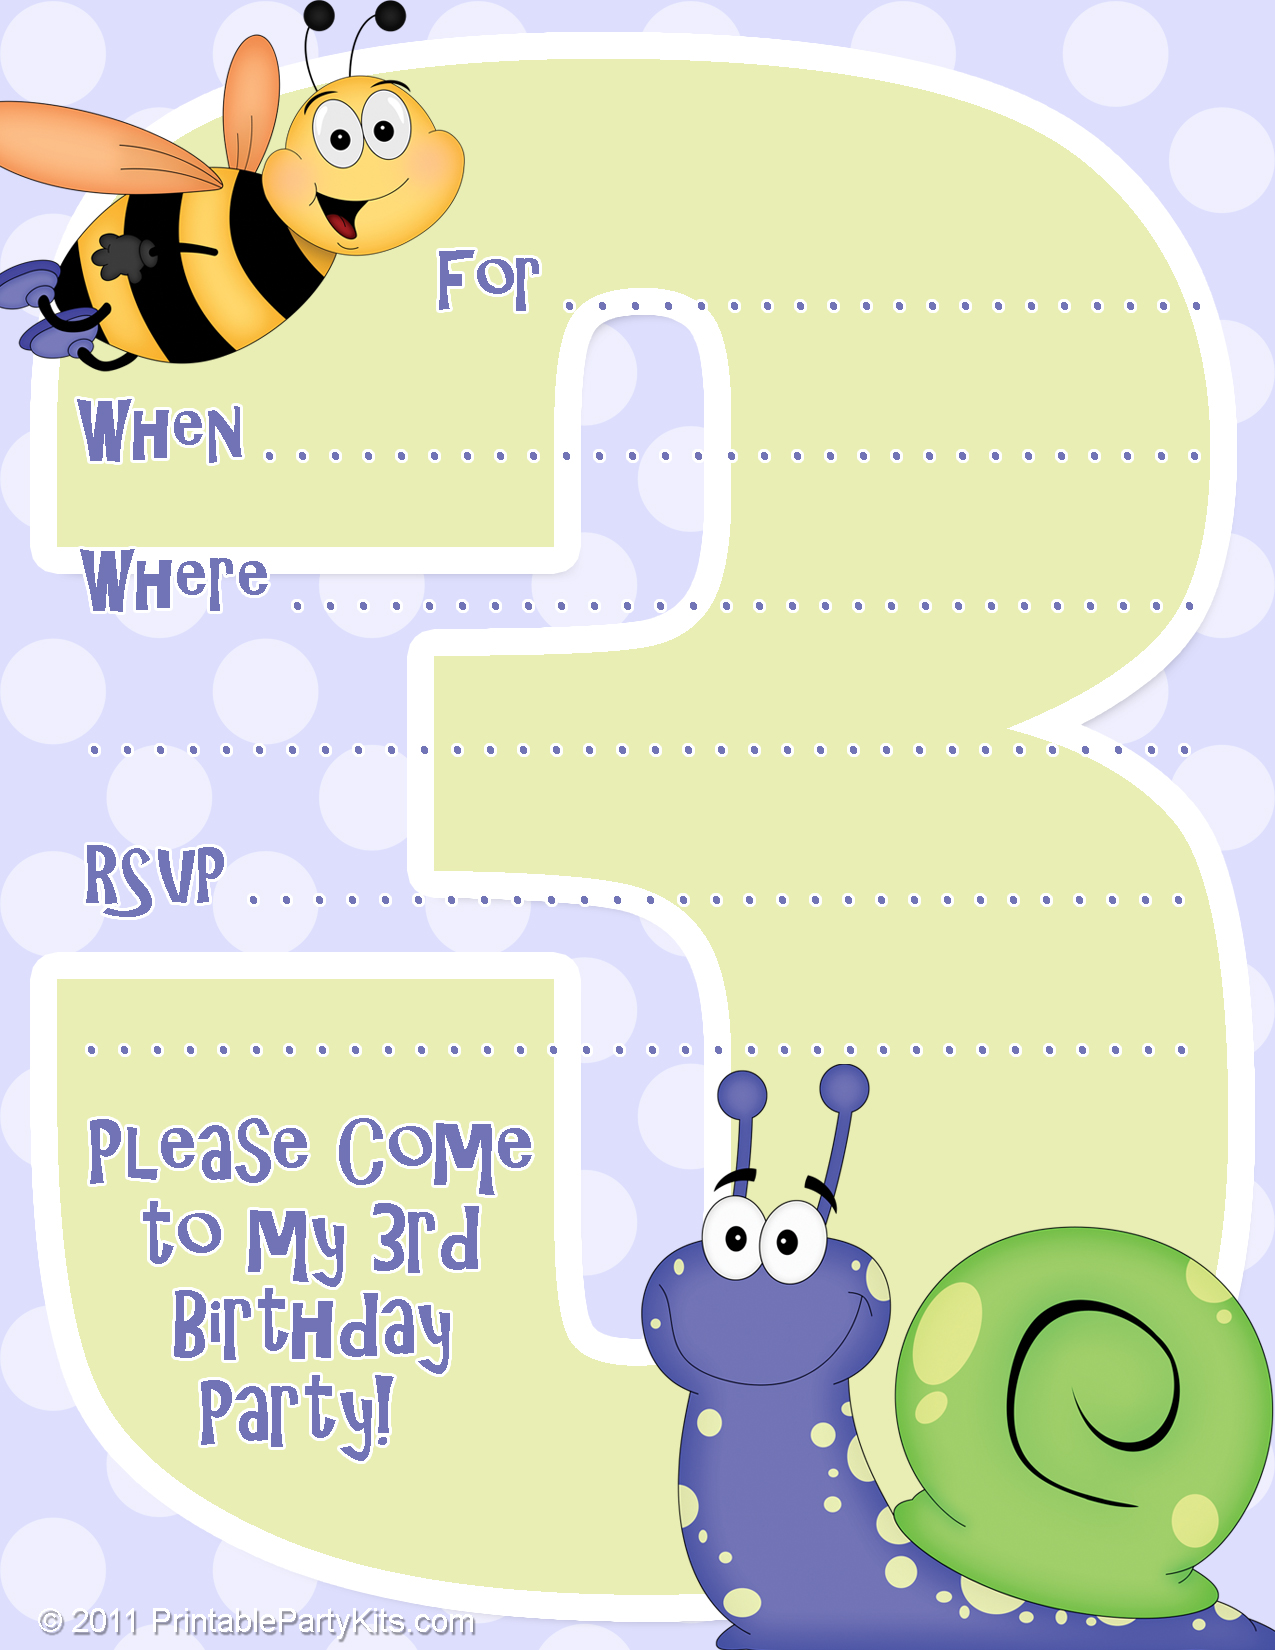 3rd Birthday Party Invitation Template - Printable Party Kits